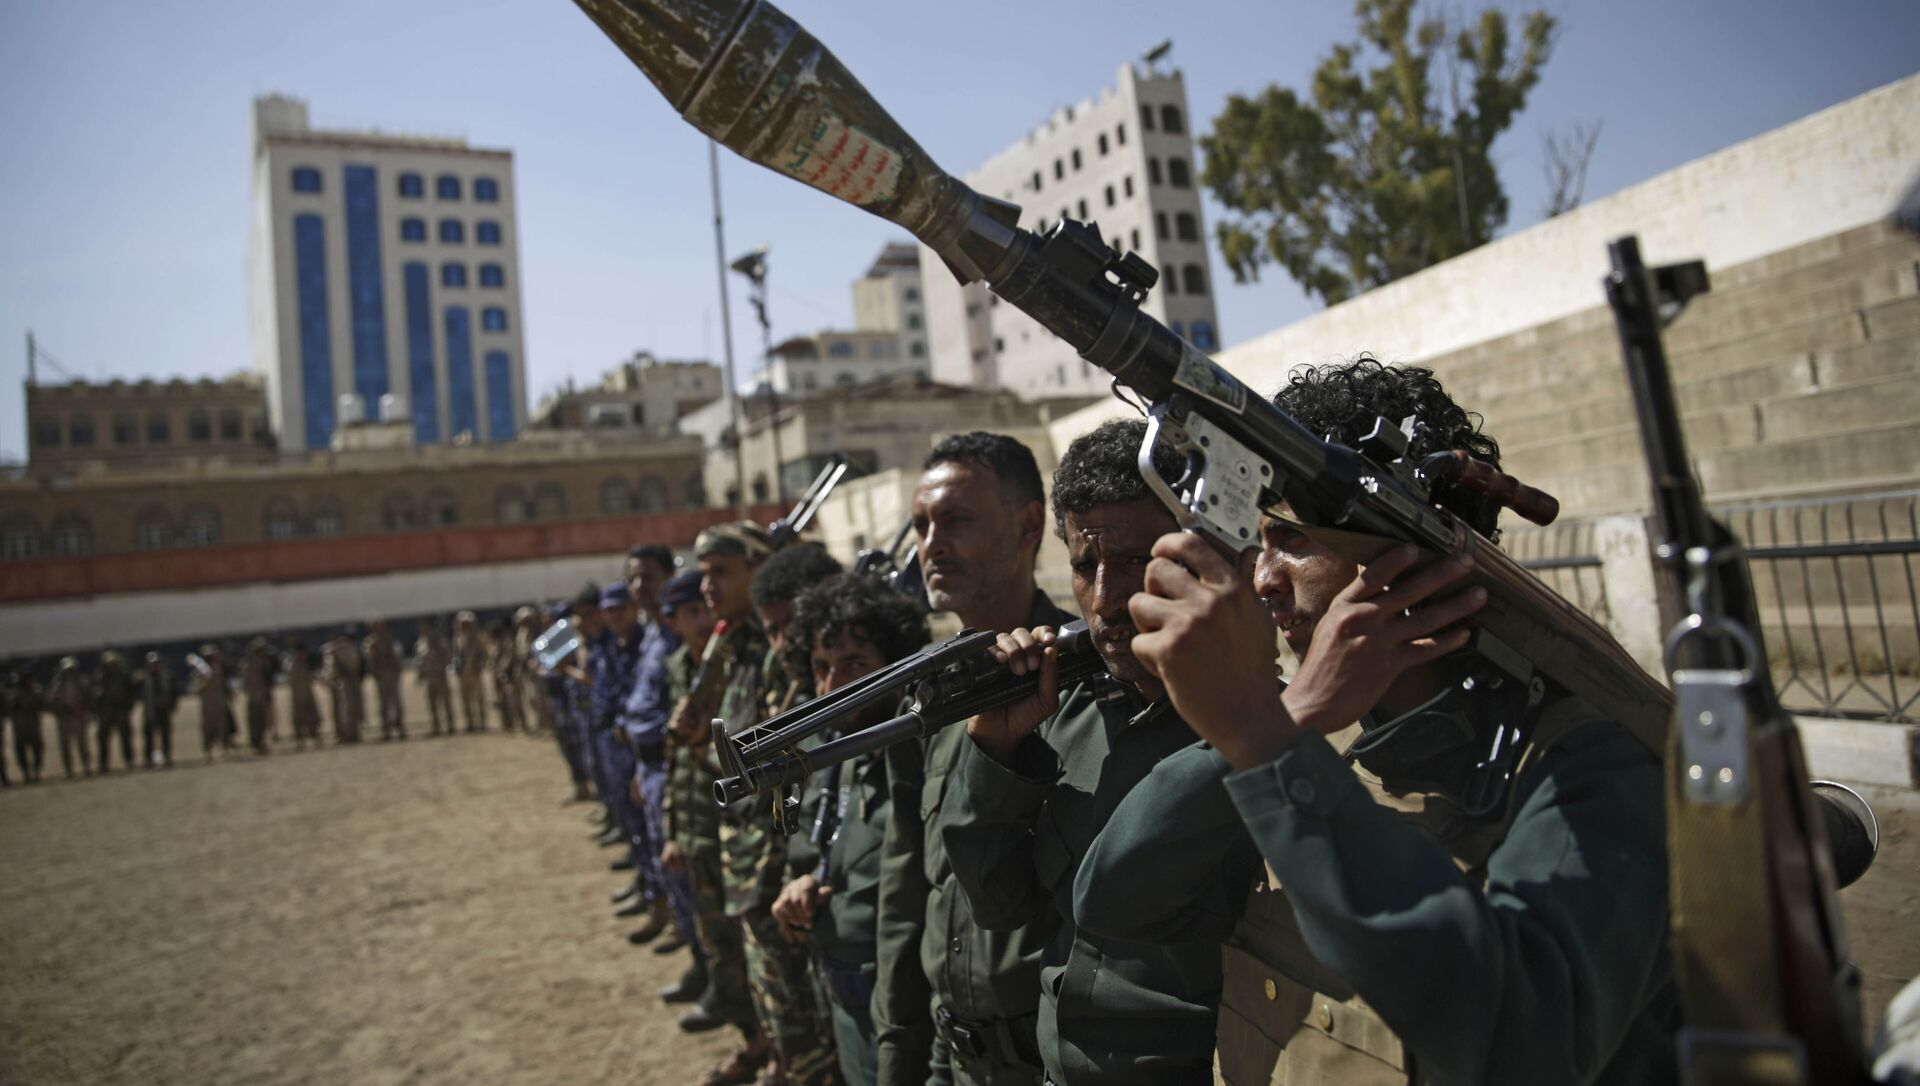 Houthi rebel fighters display their weapons during a gathering aimed at mobilizing more fighters for the Iranian-backed Houthi movement, in Sanaa, Yemen, Thursday, Feb. 20, 2020. The Houthi rebels control the capital, Sanaa, and much of the country's north, where most of the population lives. They are at war with a U.S.-backed, Saudi-led coalition fighting on behalf of the internationally recognized government. - Sputnik International, 1920, 24.07.2021